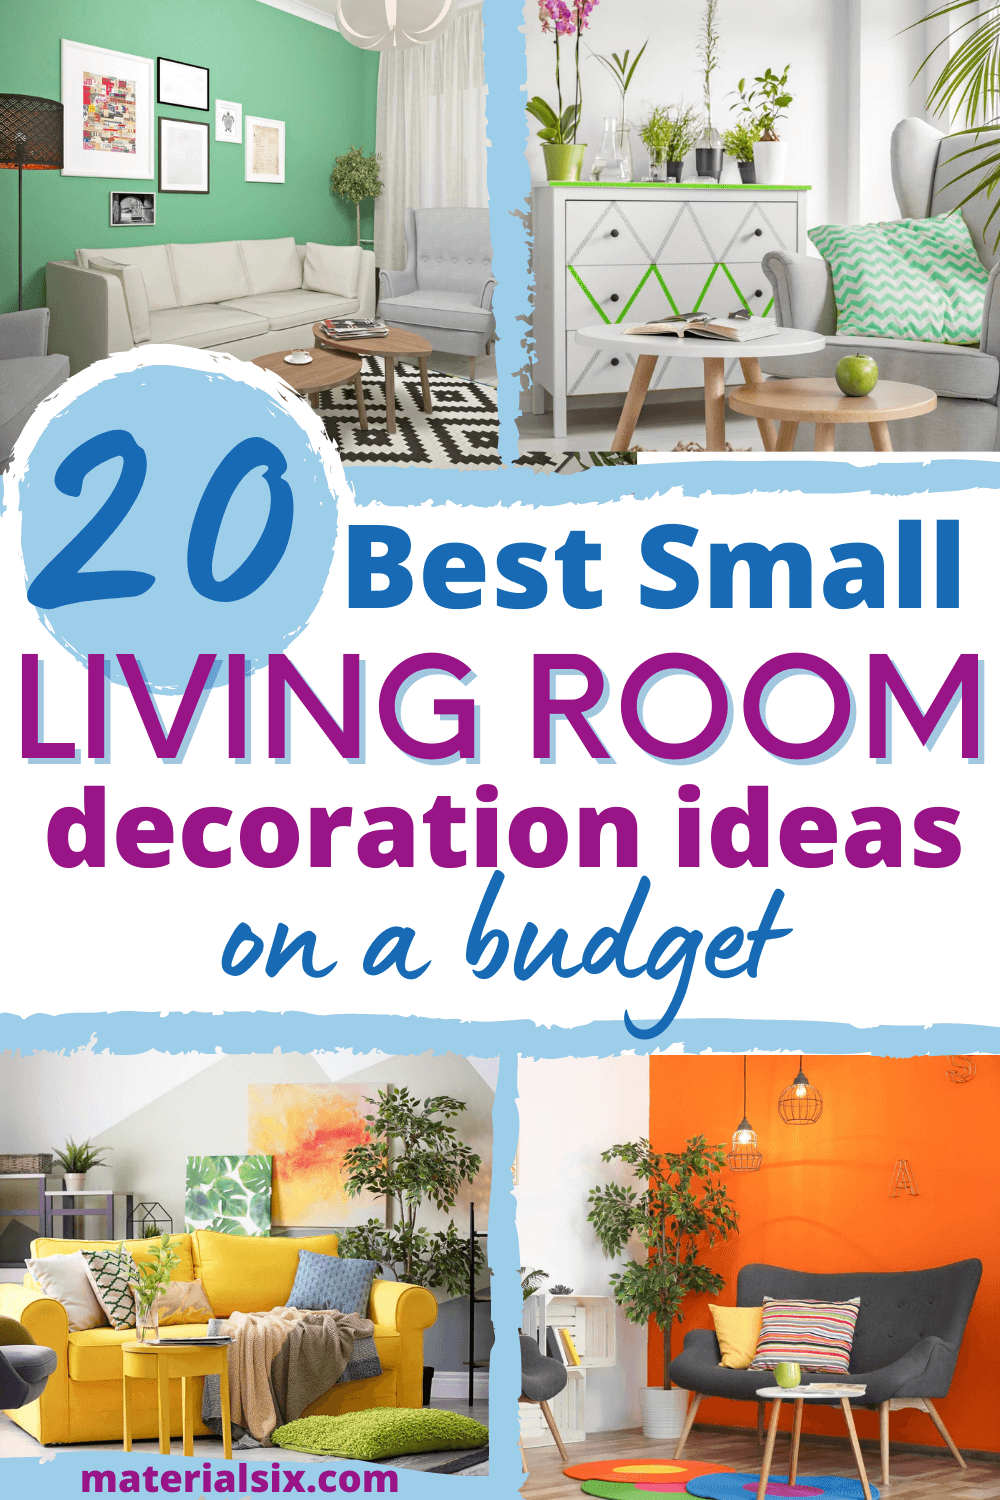 20 Best Small Living Room Decor Ideas On A Budget (with Photos)